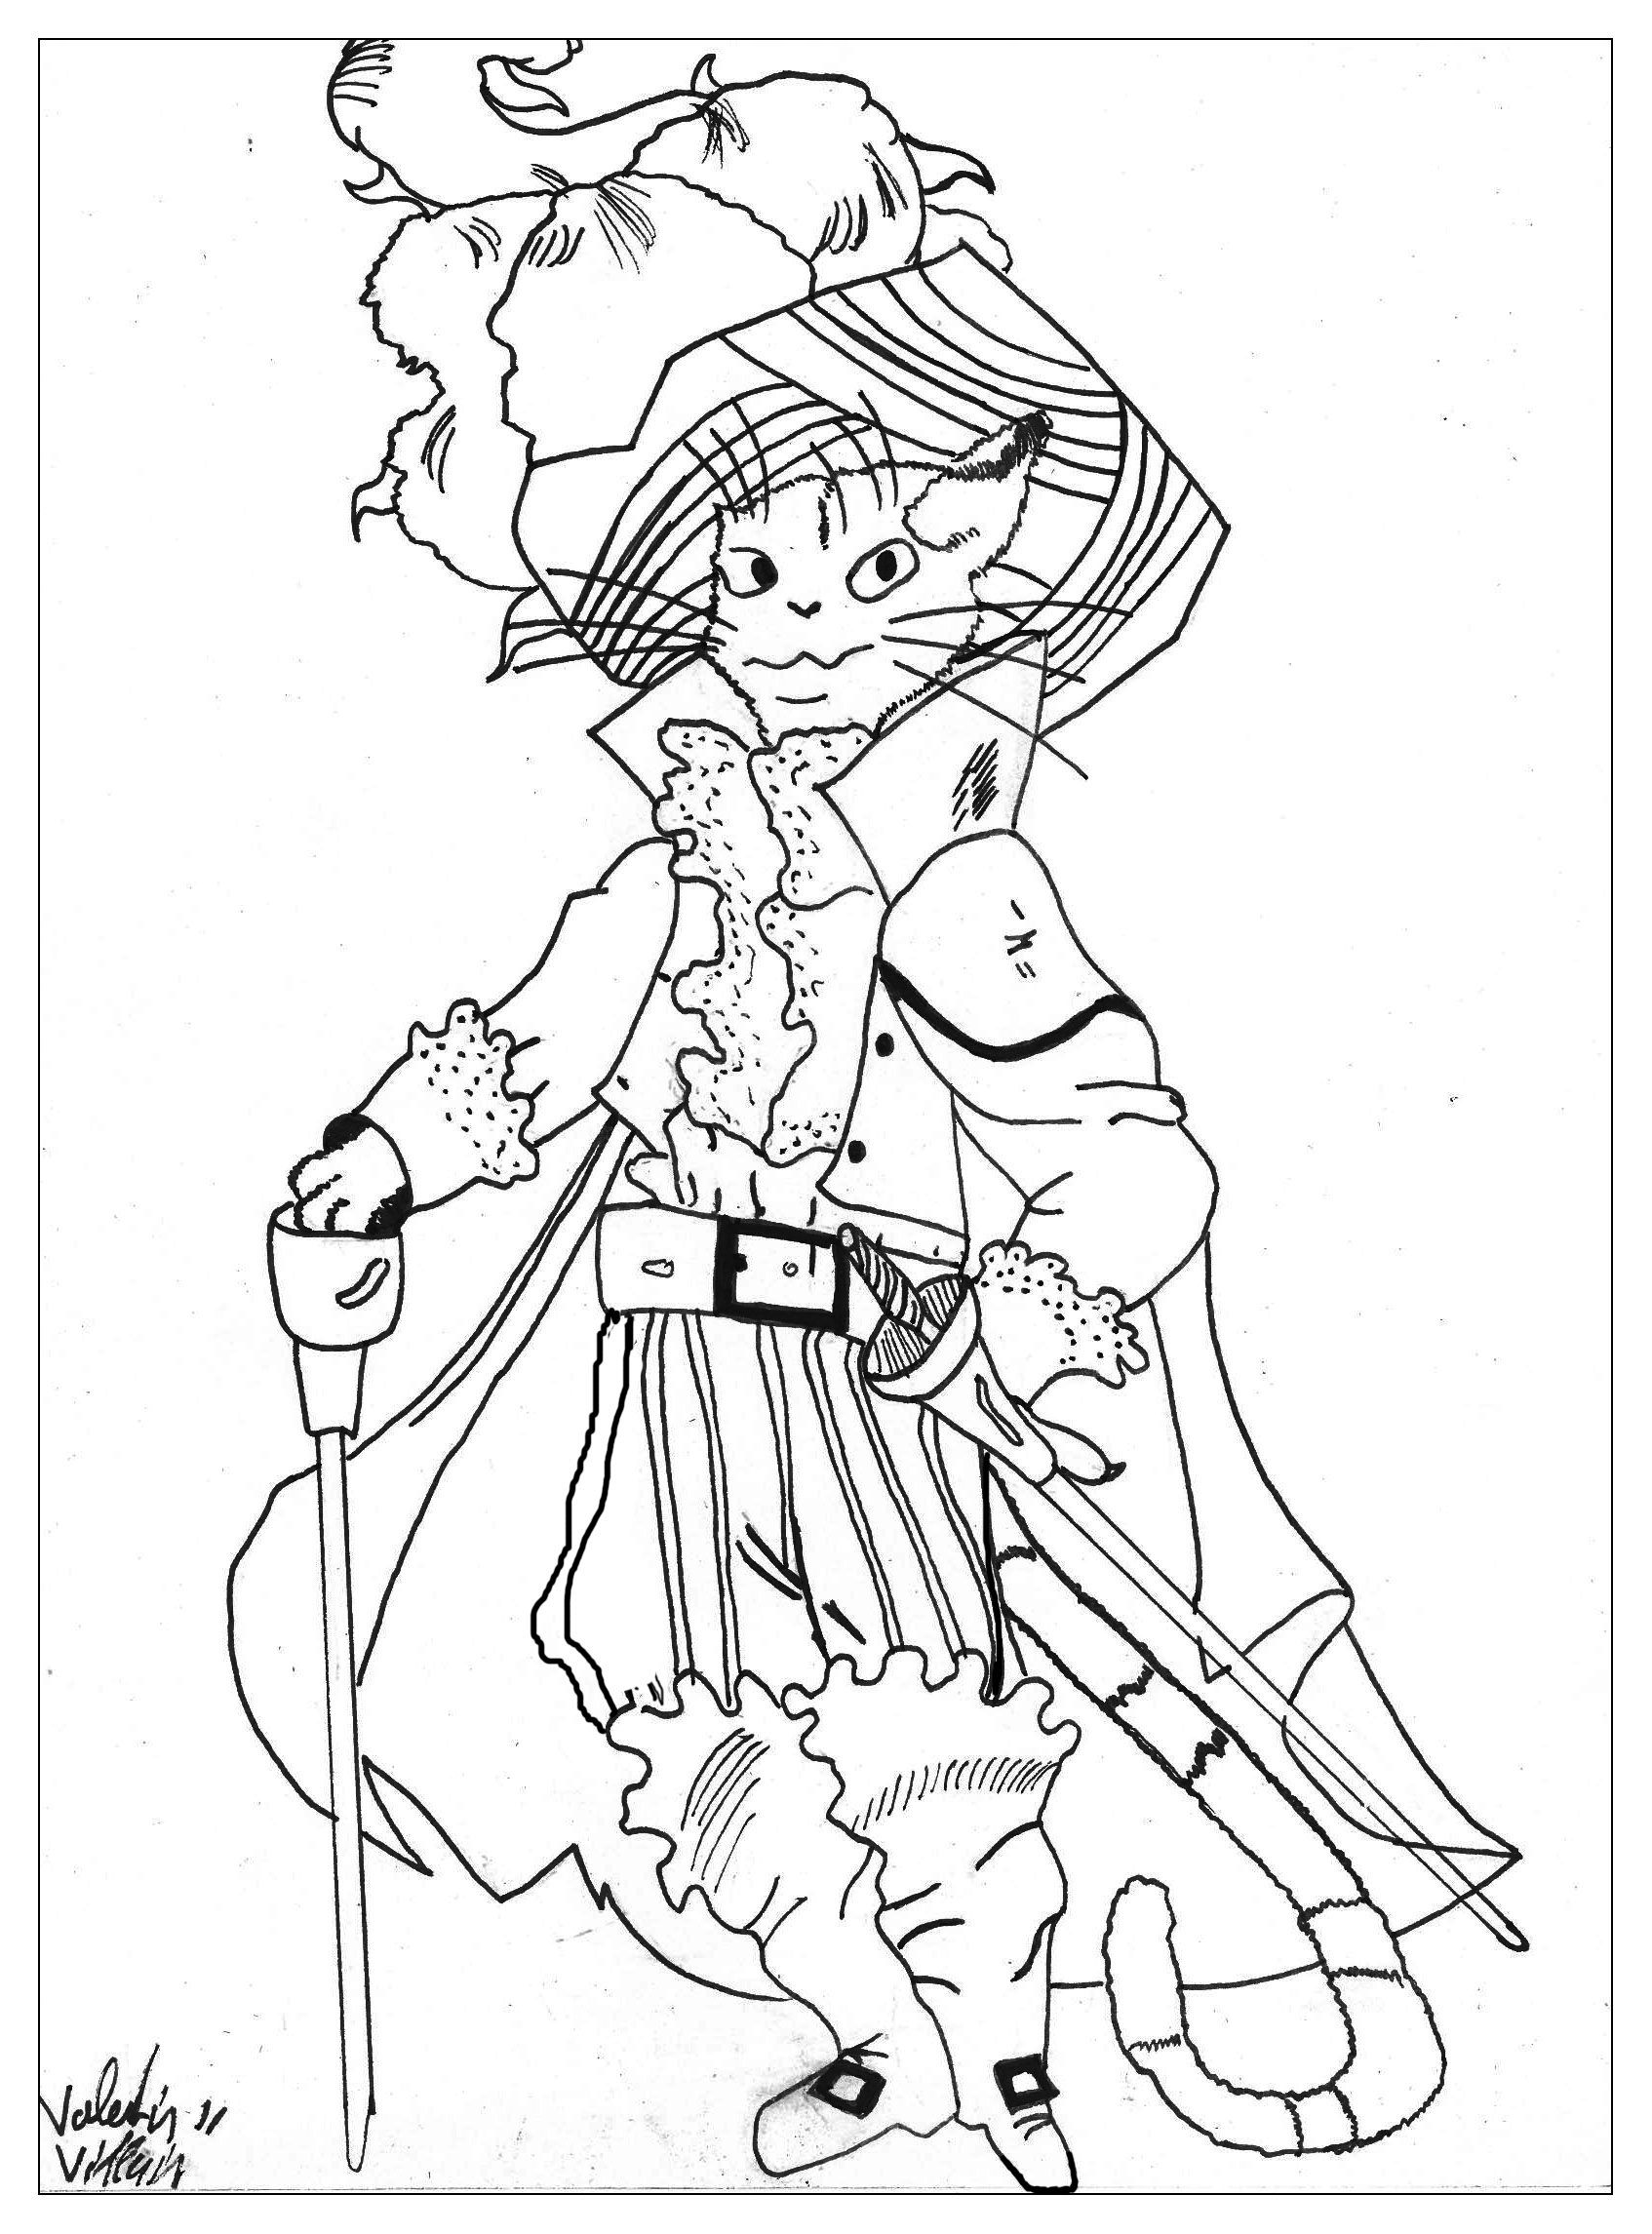 Tales coloring page to download for free